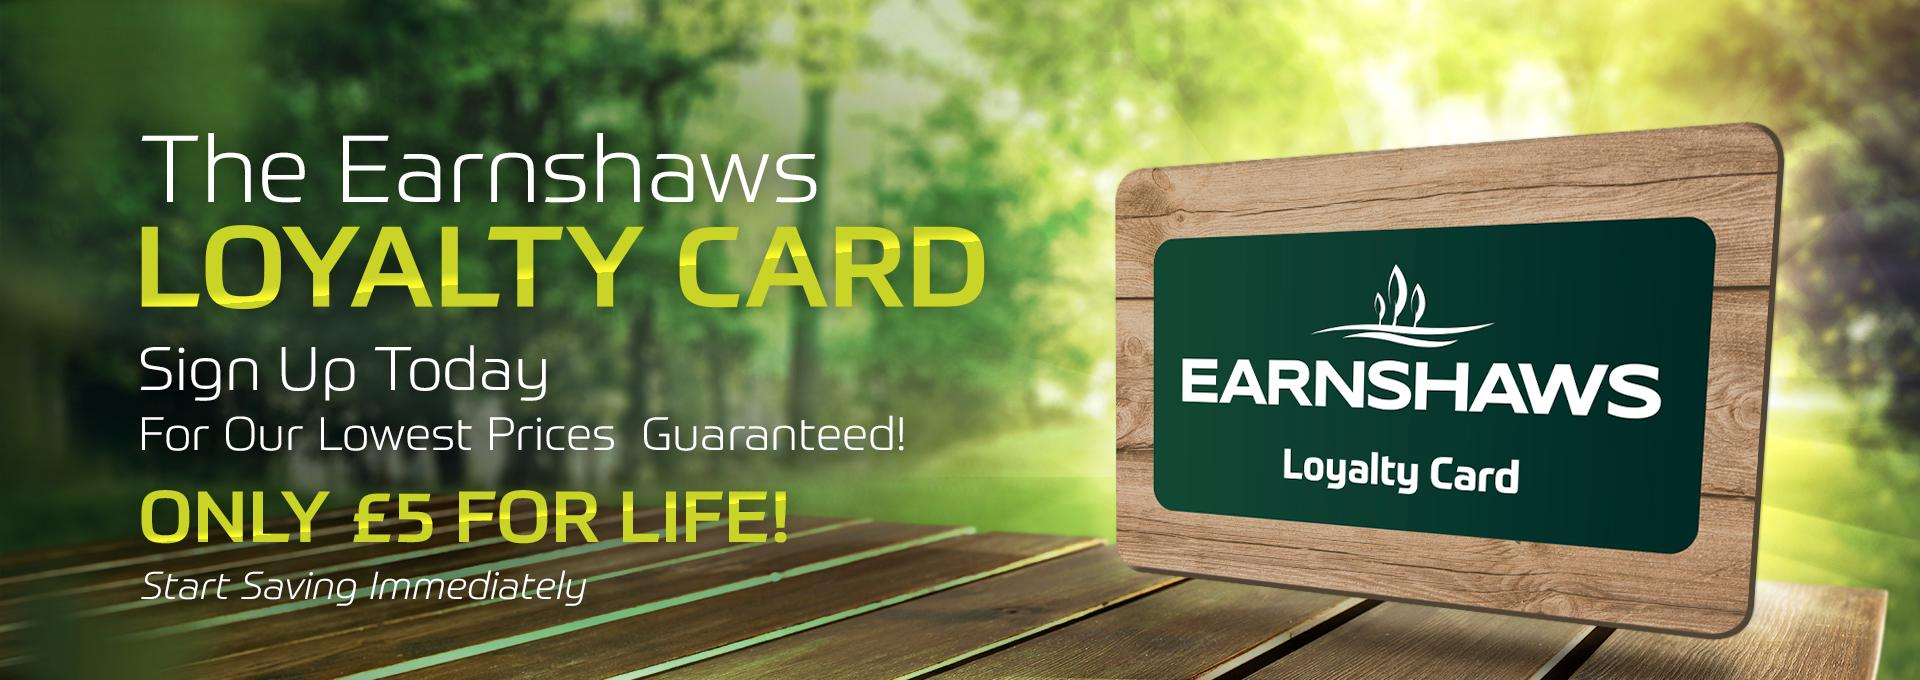 EARNSHAWS LOYALTY CARD Header Banner